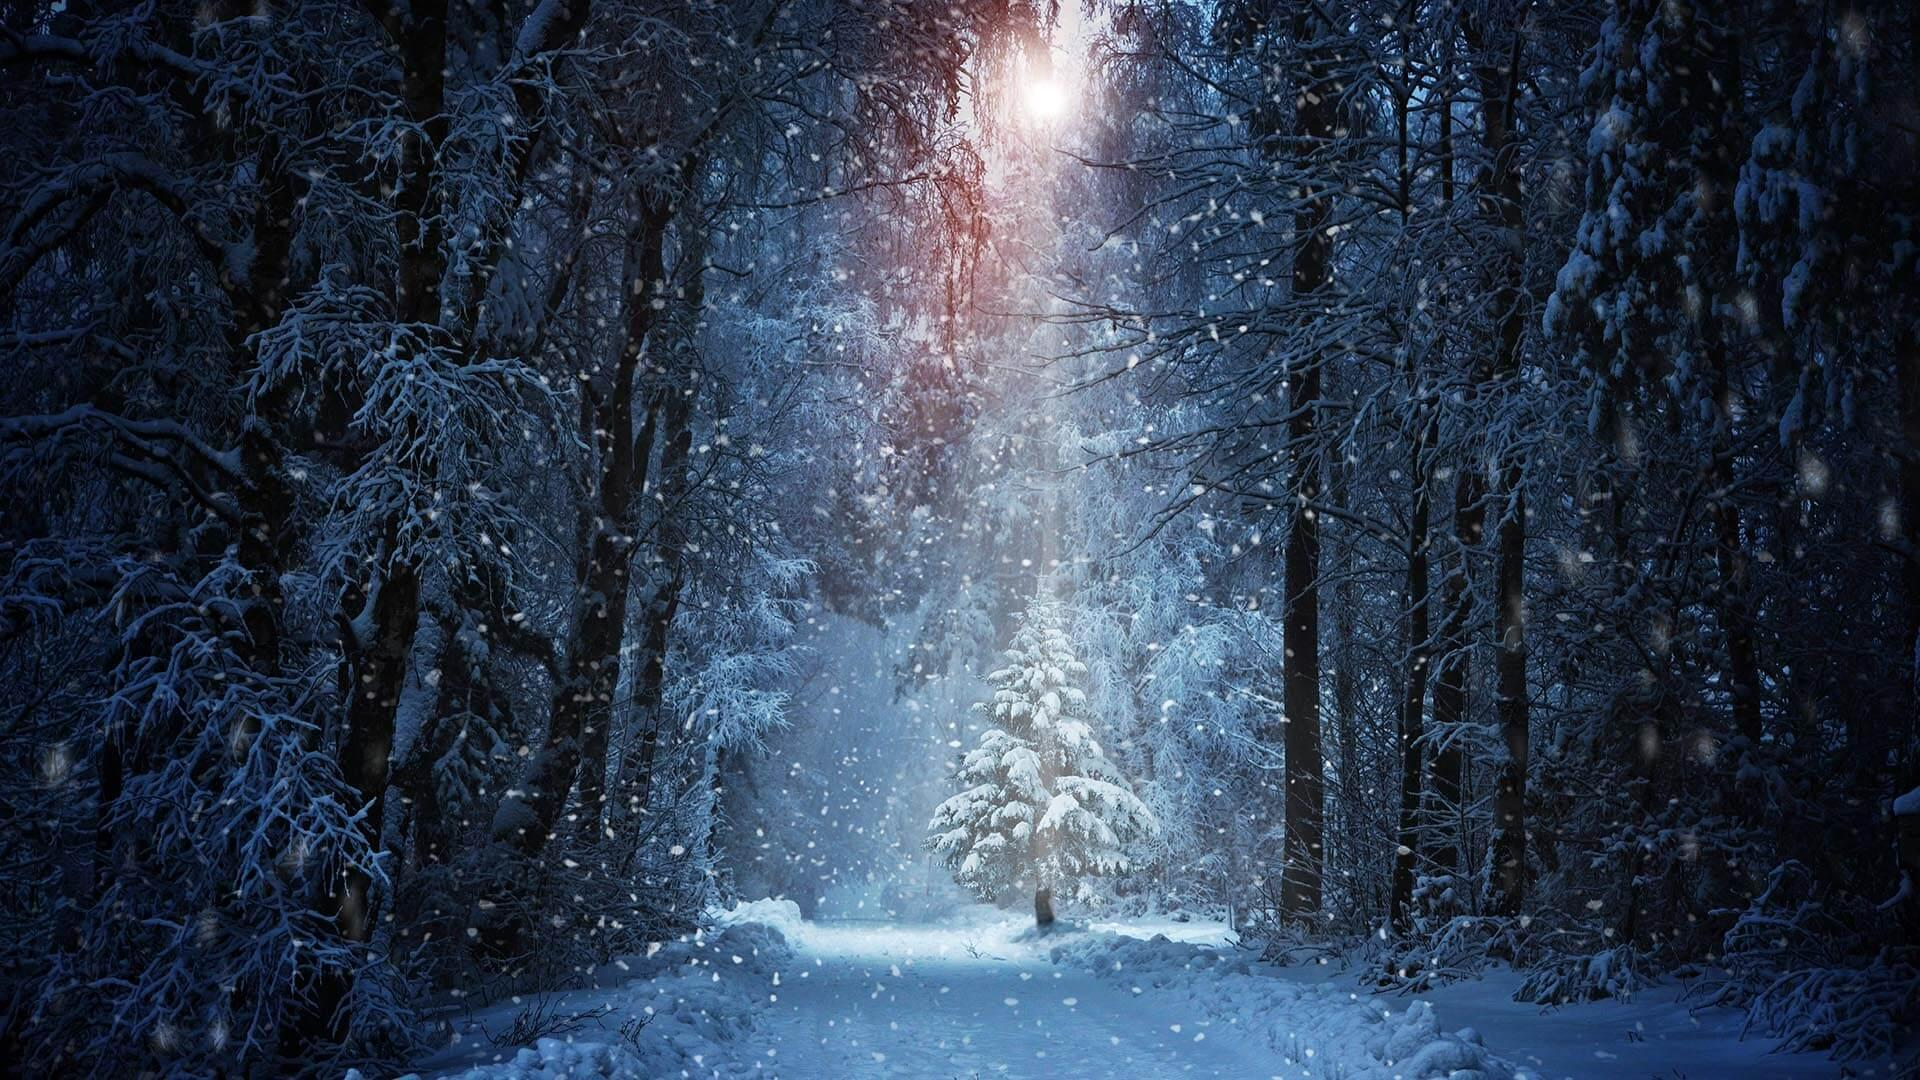 Snowfall Wallpaper Hd For Android Apk Download